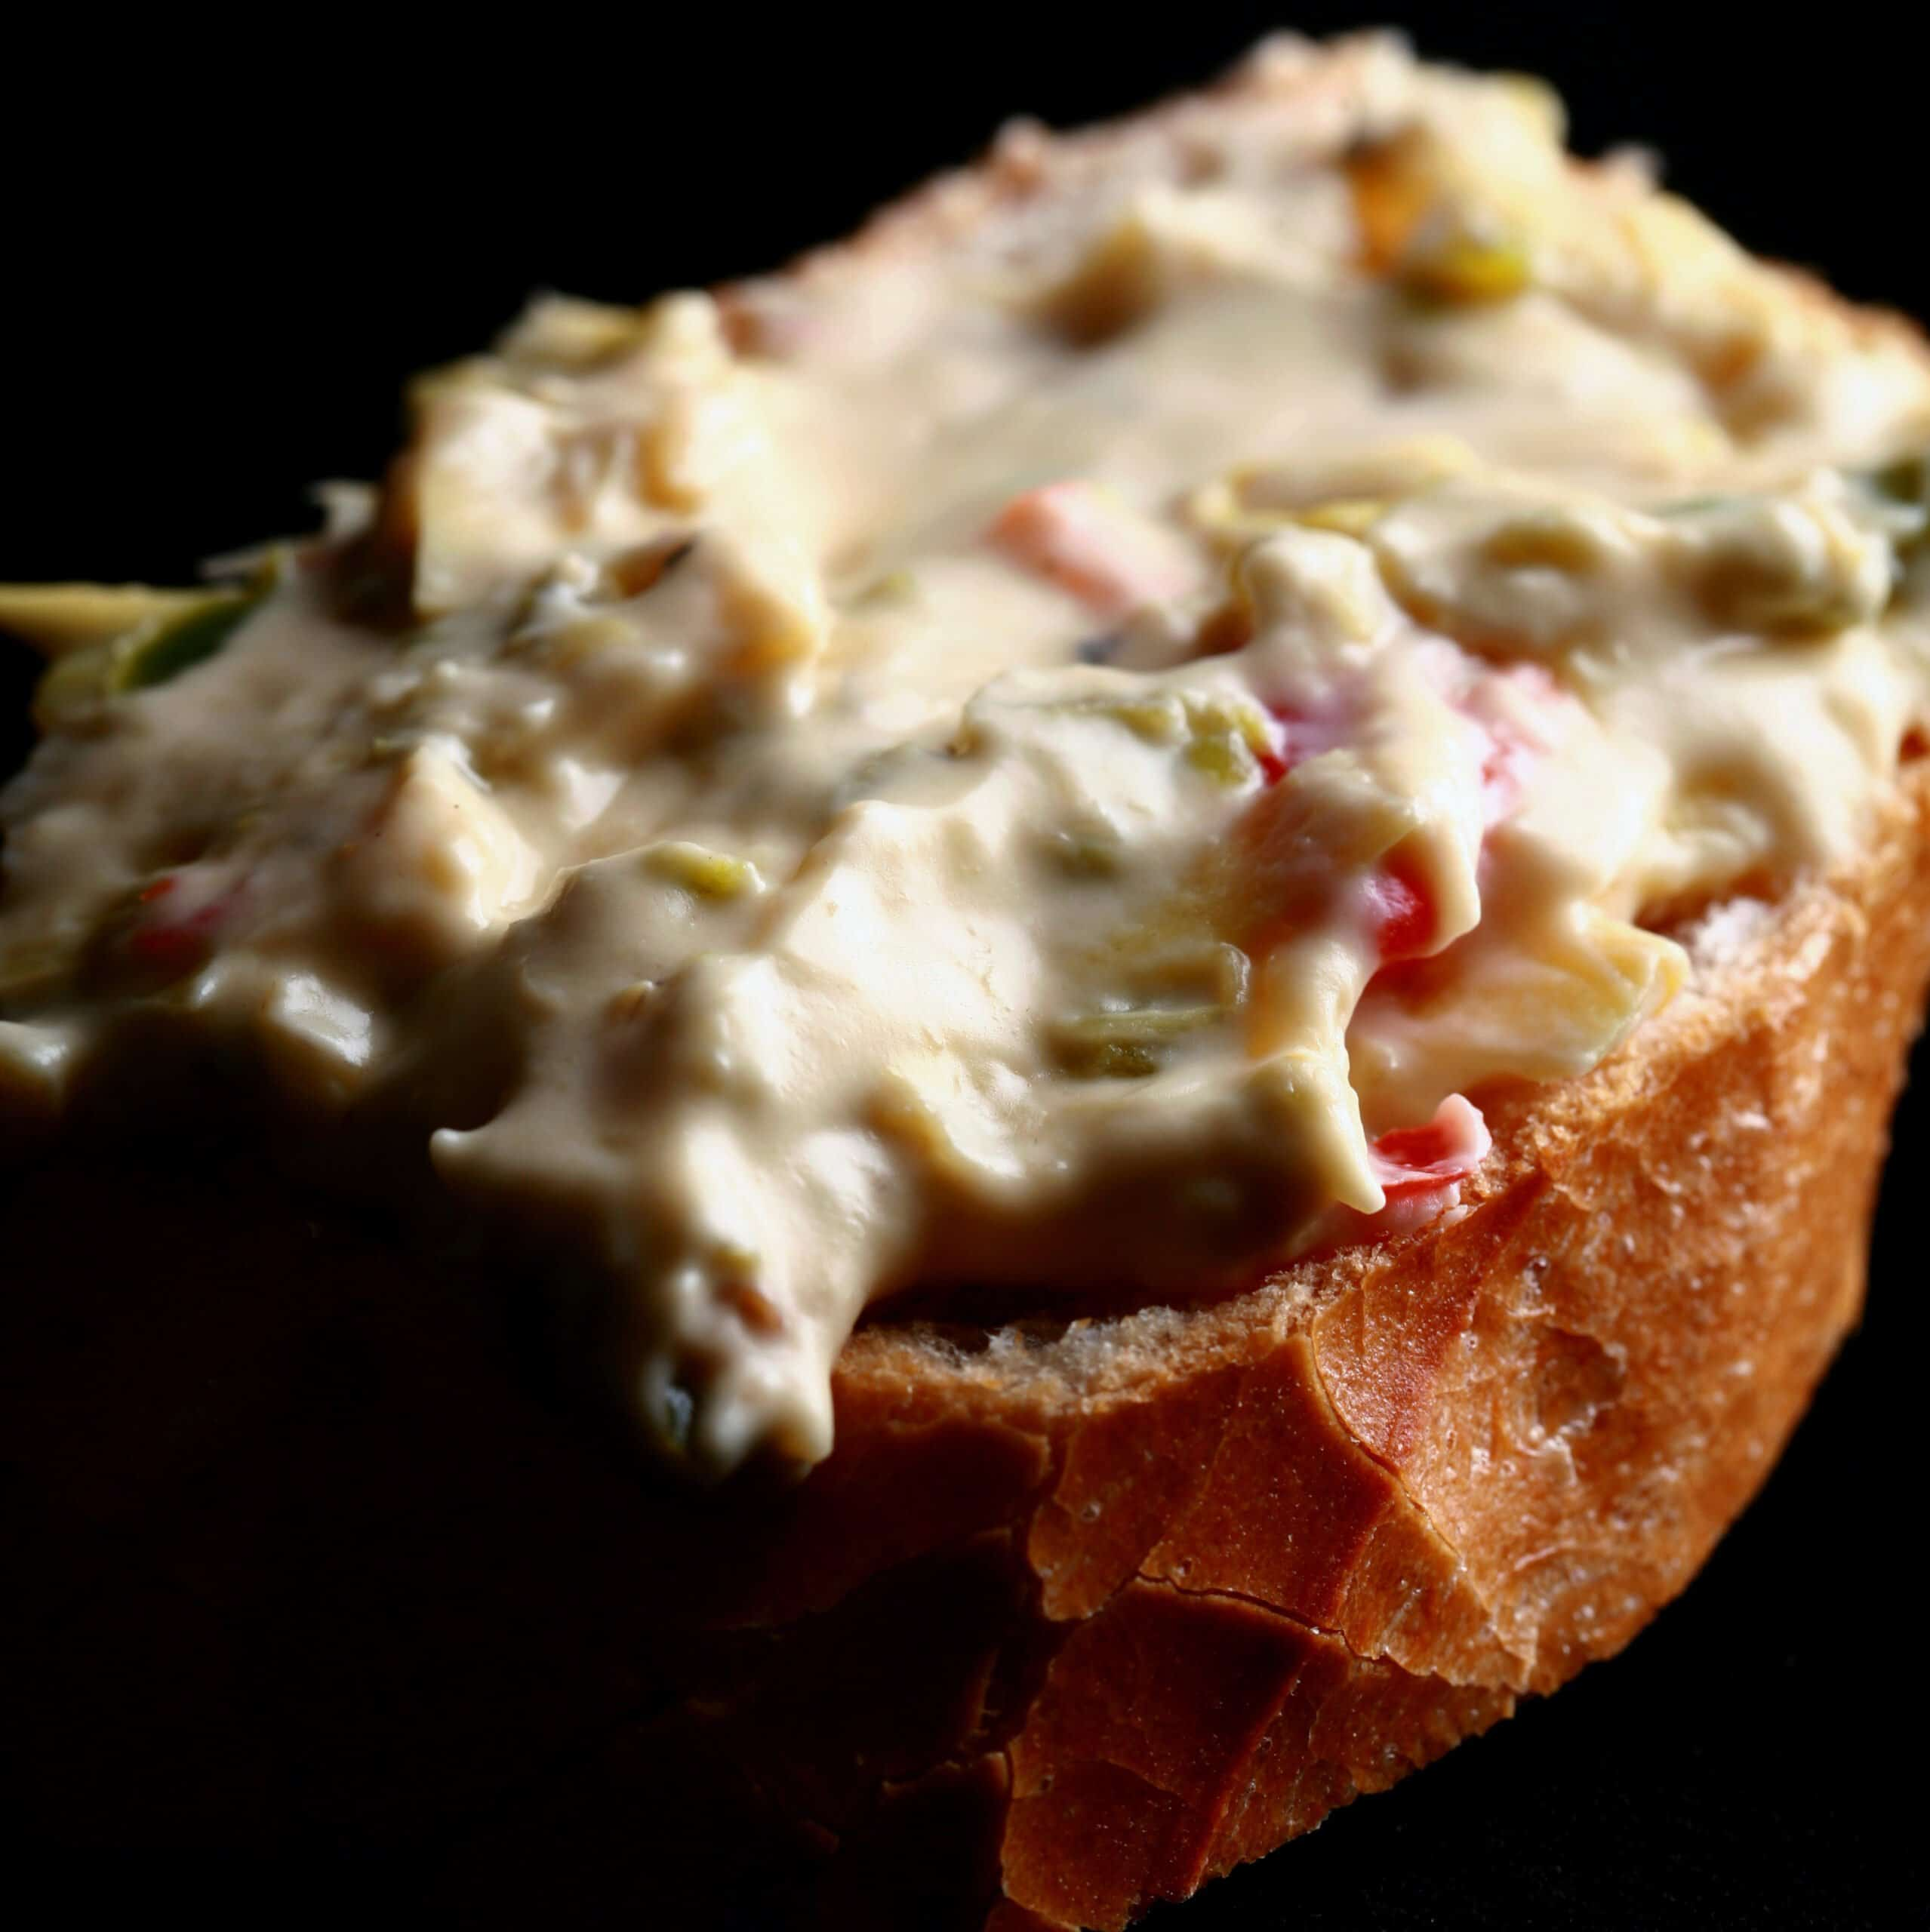 A slice of baguette spread with Backfire dip - a chunky jalapeno artichoke cheese dip.